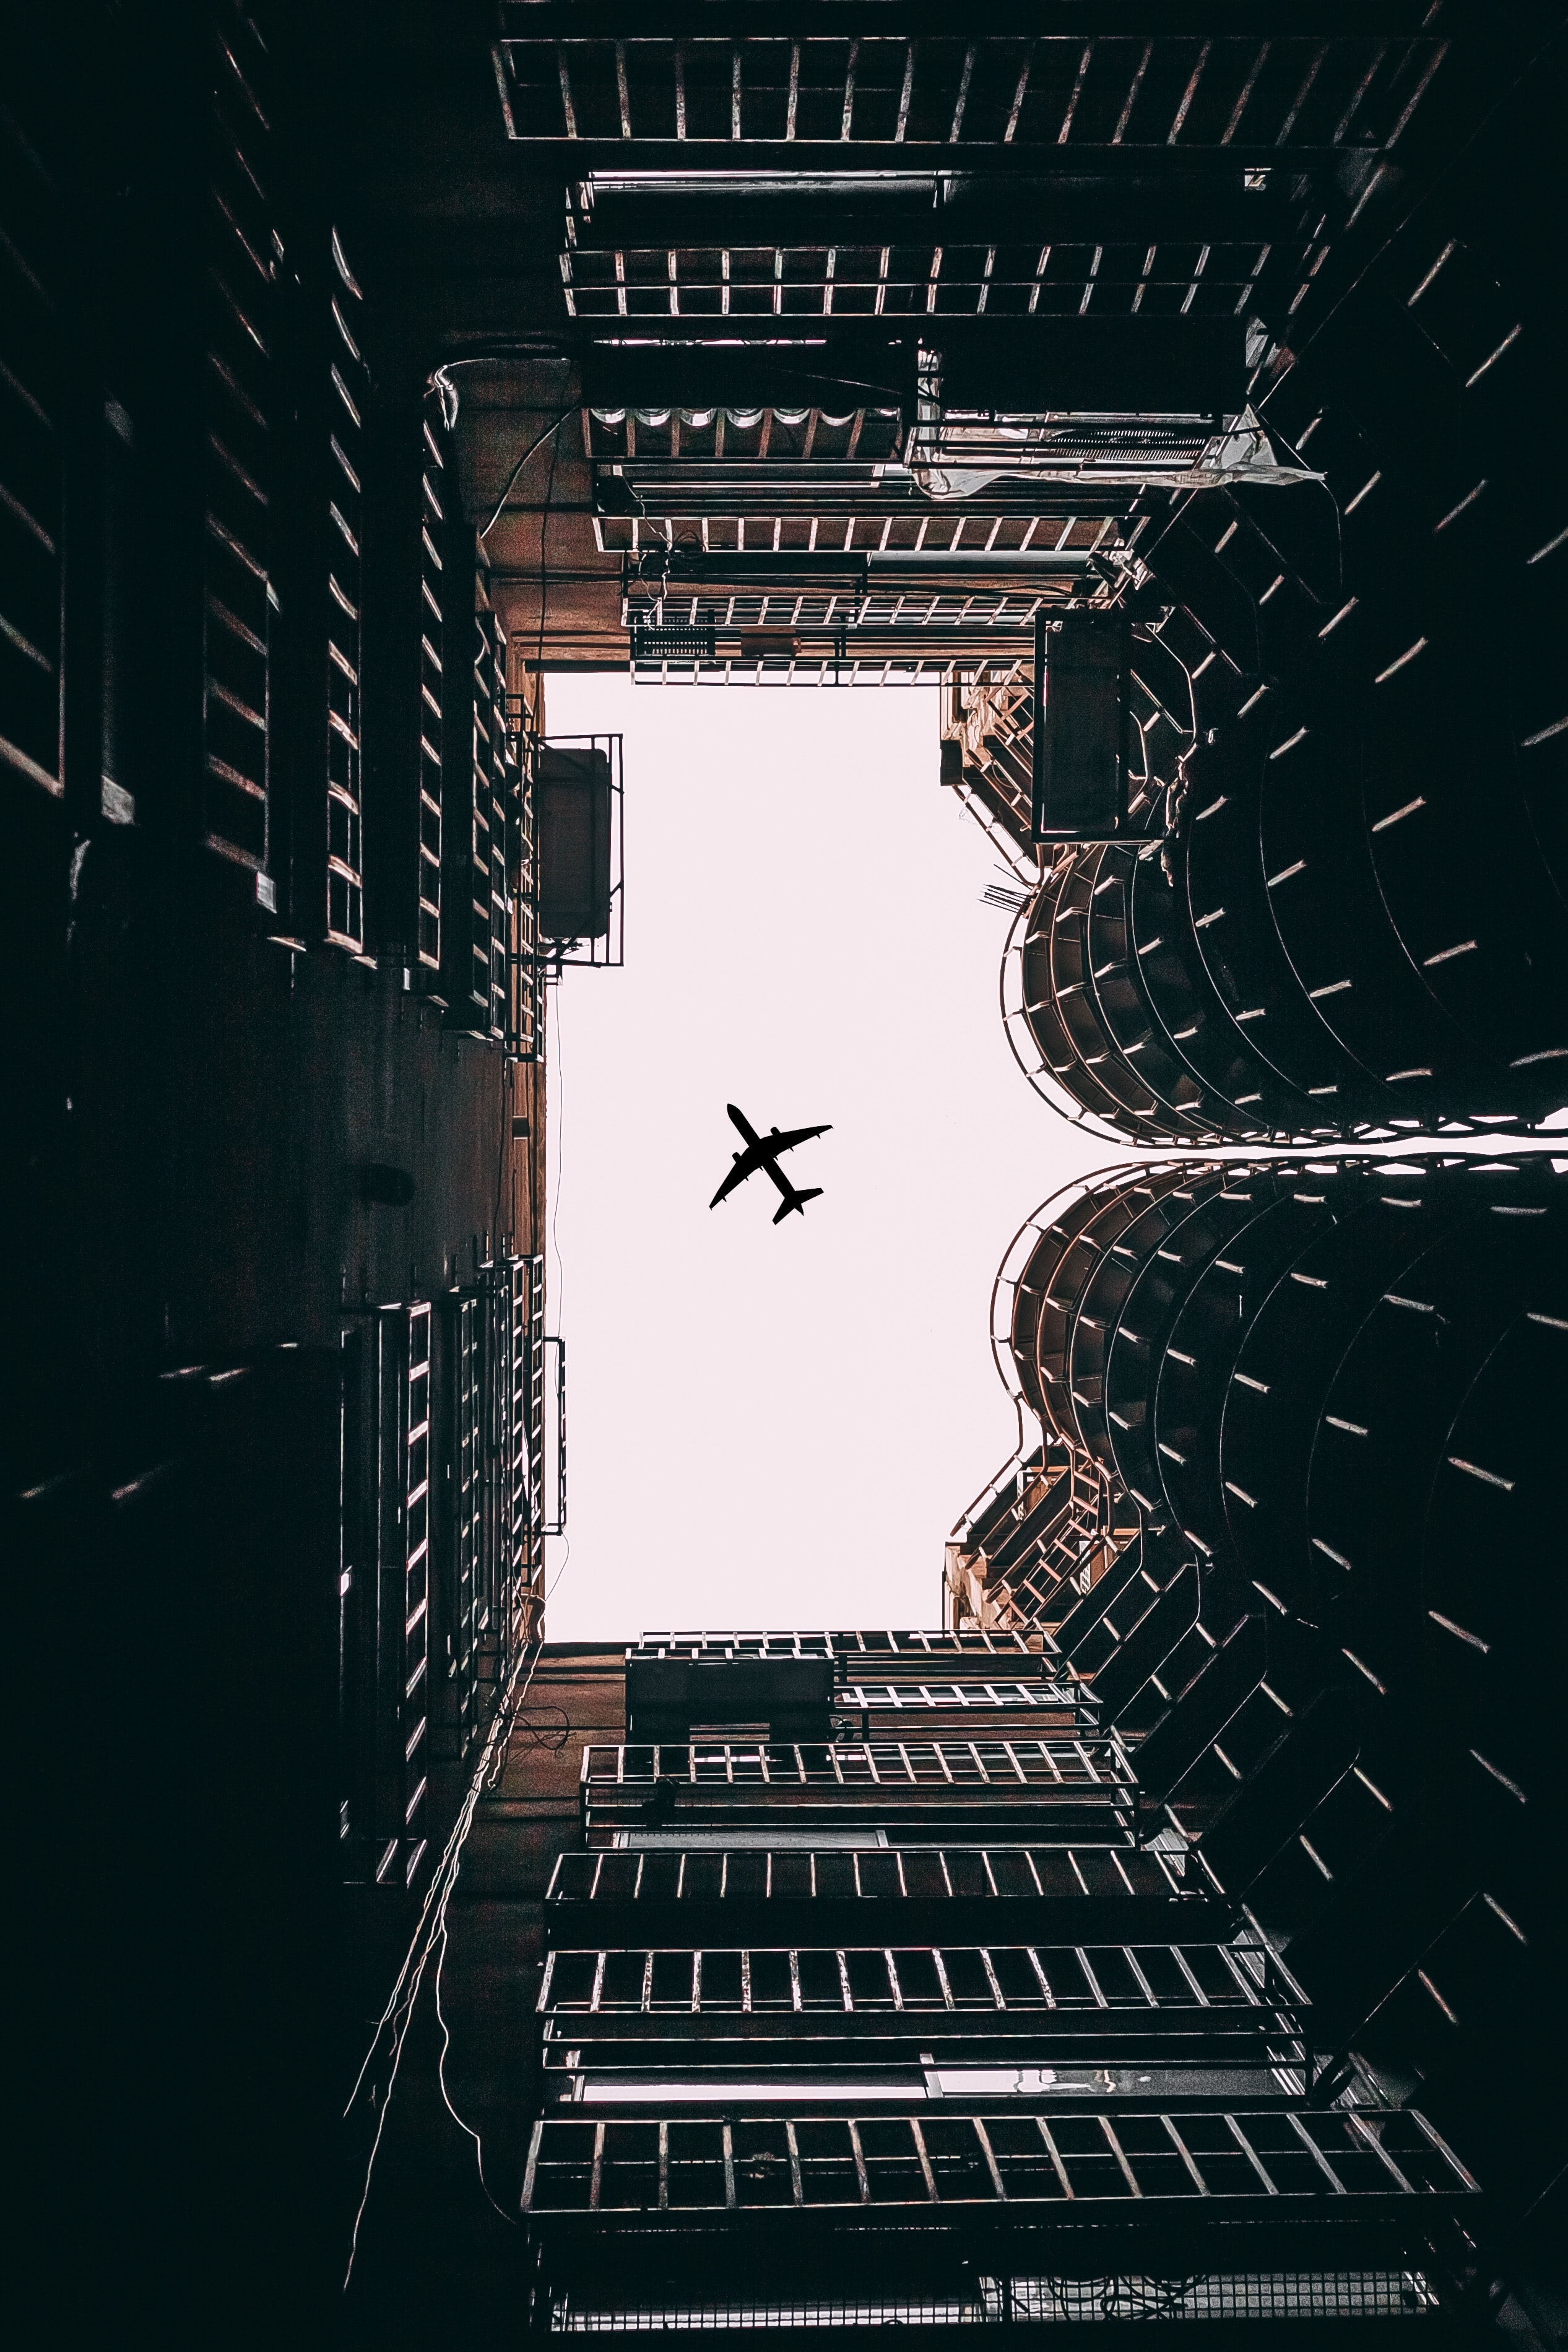 angle view of airplane